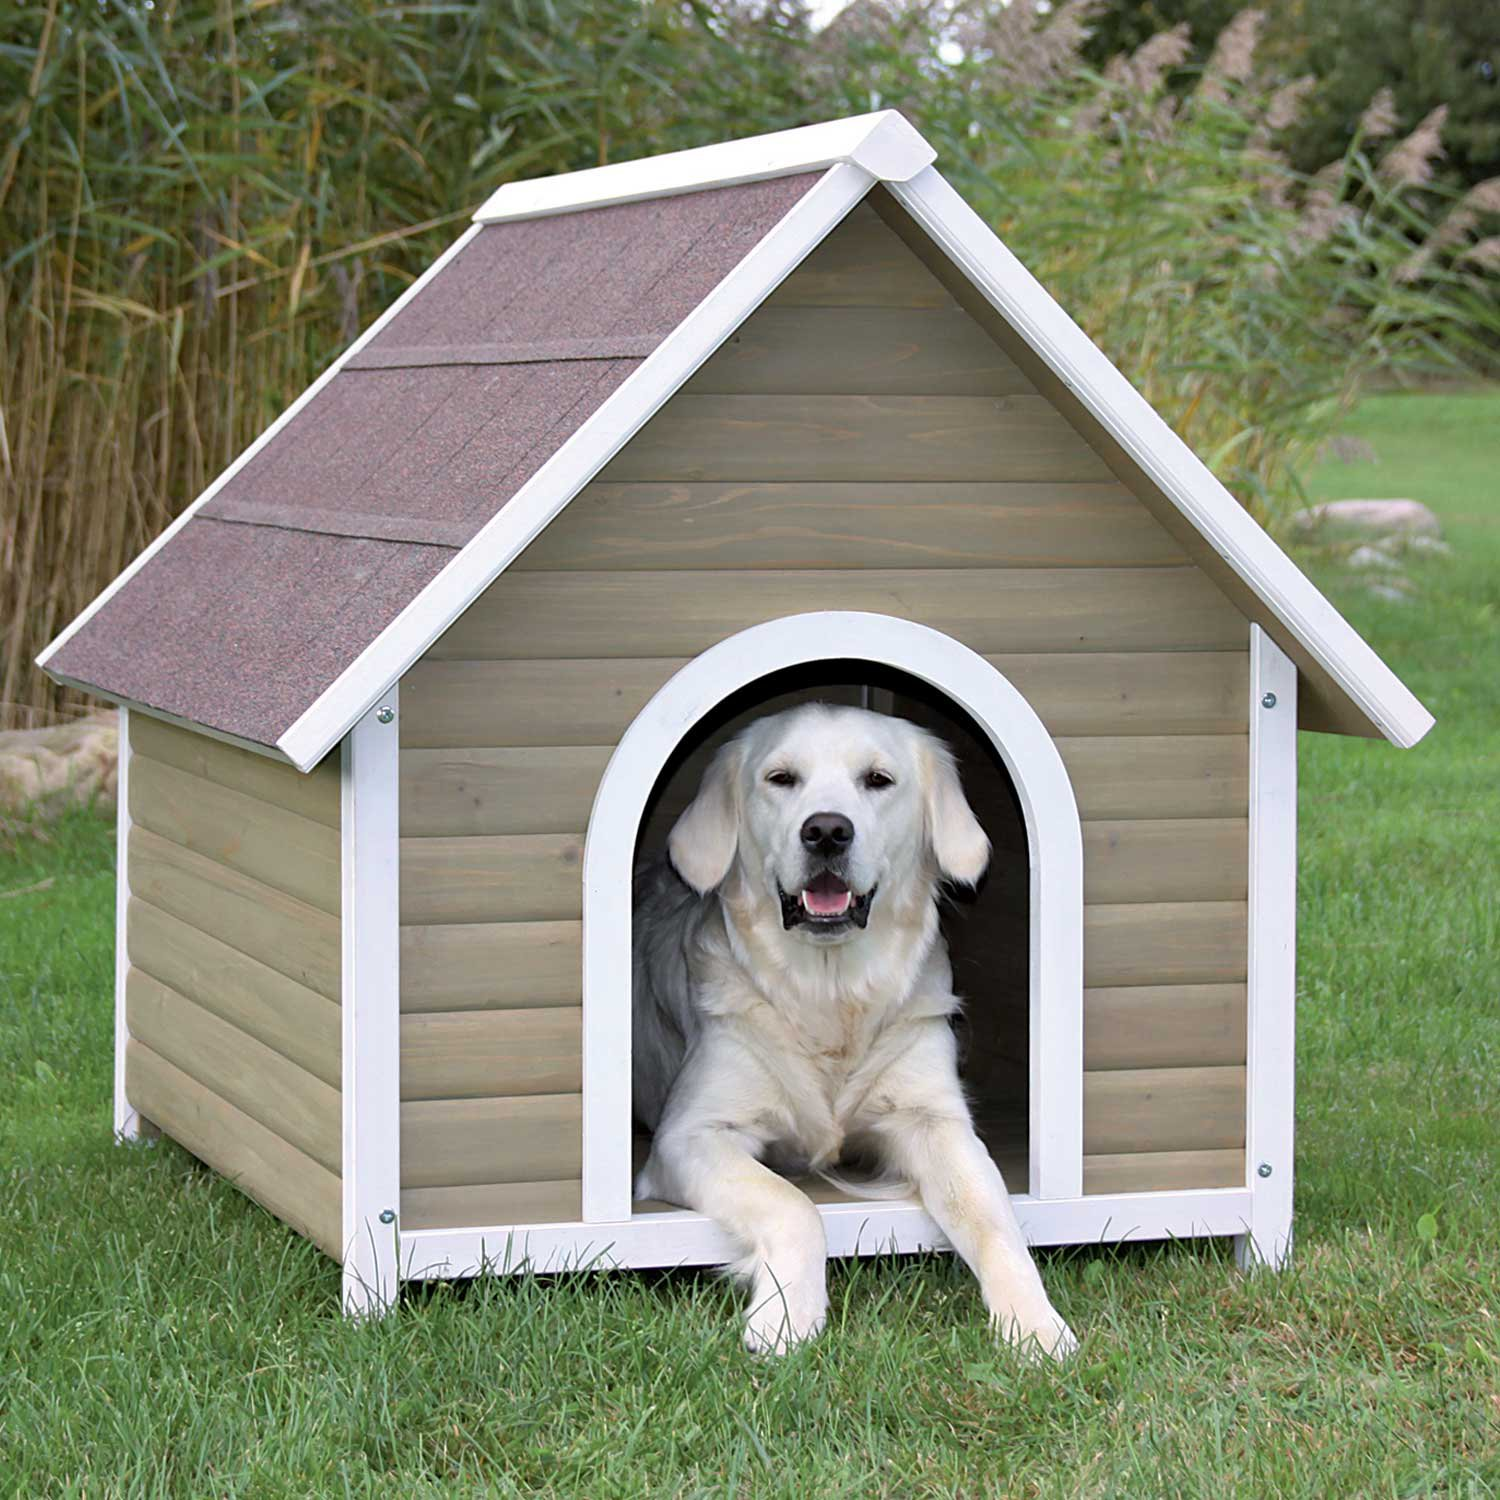 20 free dog house diy plans and idea39s for building a dog for The dog house kennel